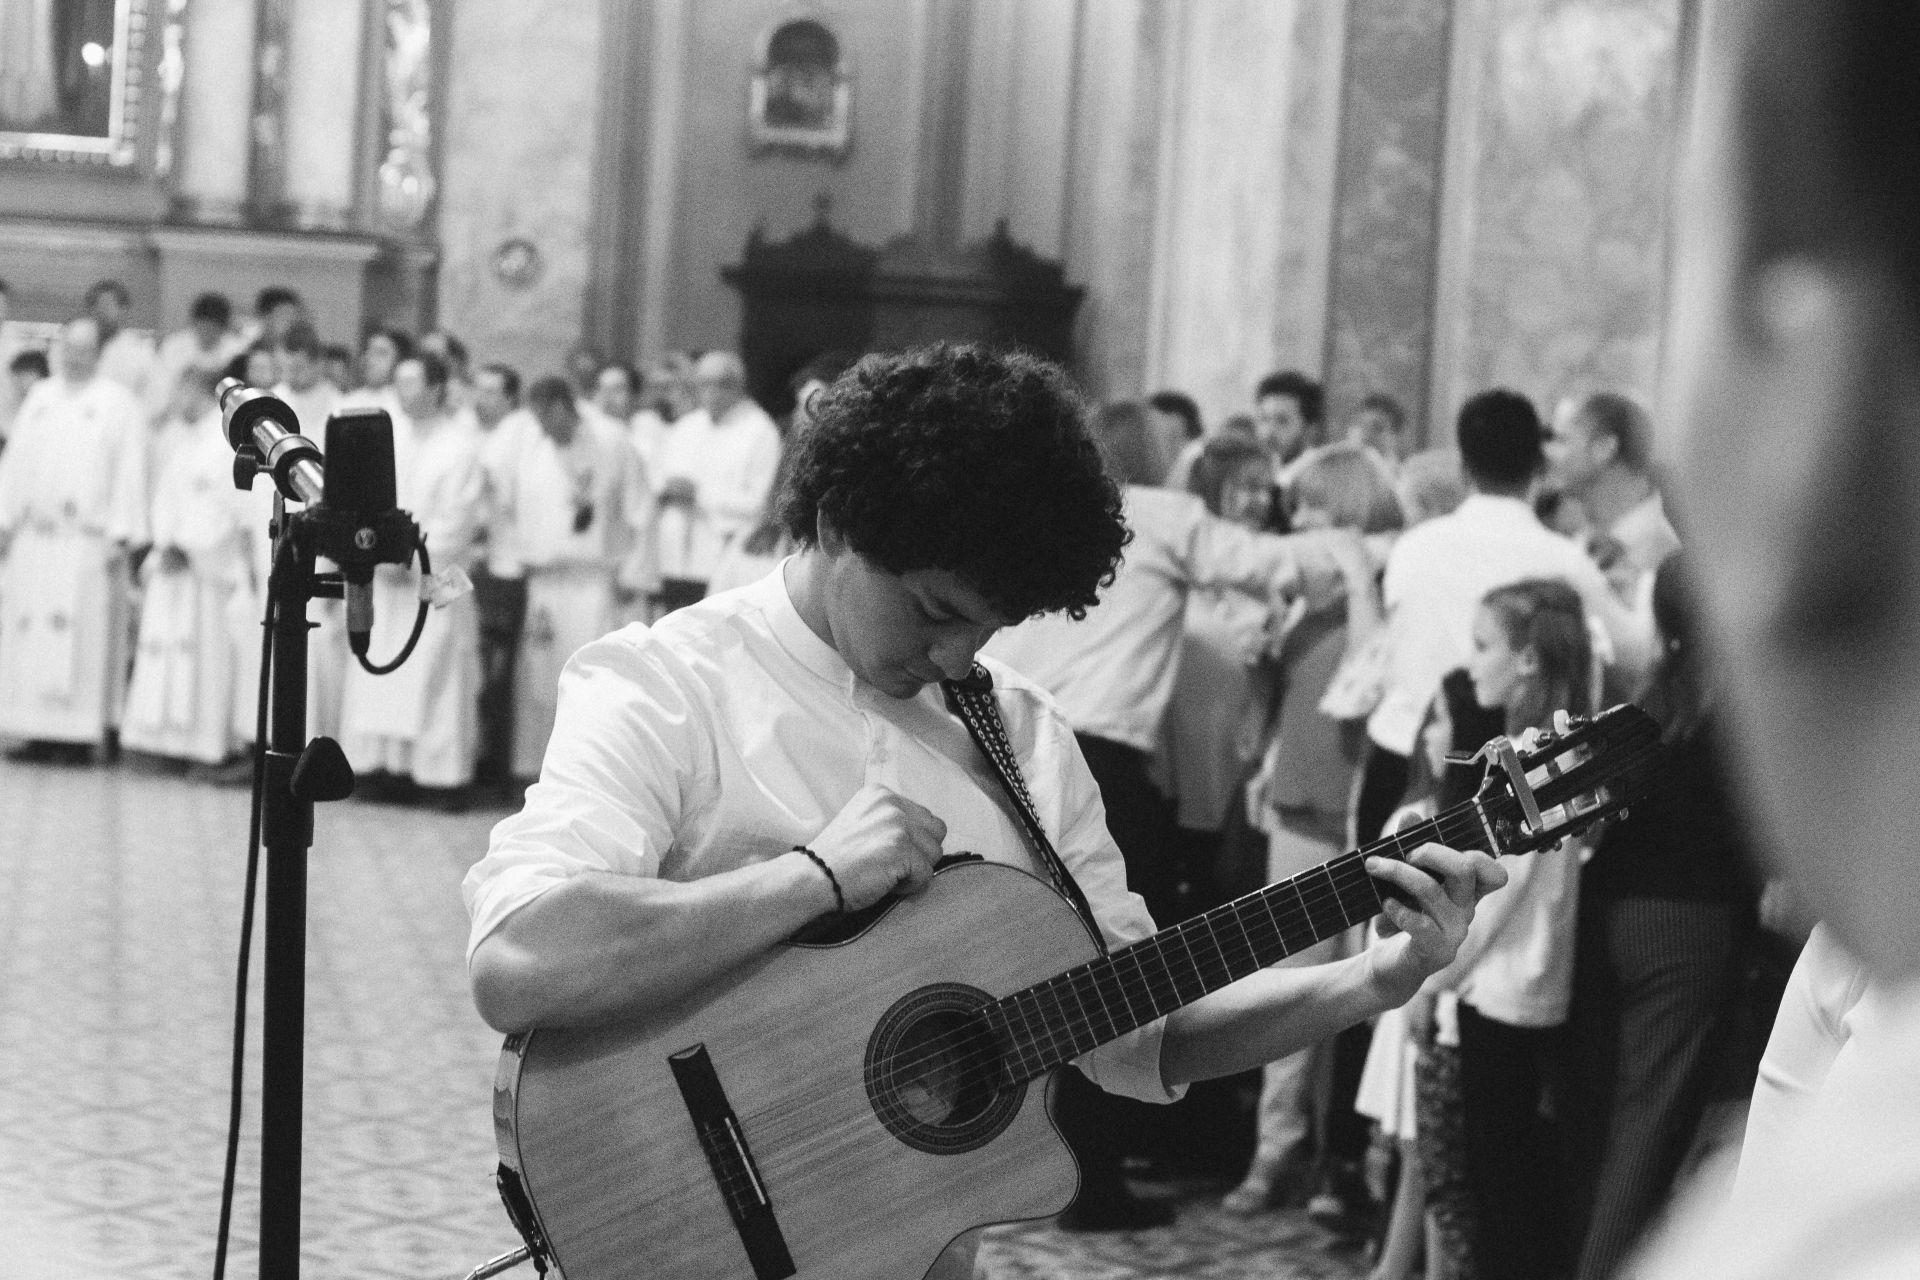 guitar, praise, to worship, vocation, worship, praise, guitar, i sing, choir, choir, meeting, singer, women, don, black and white, musician, music, musical instrument, to sing, plan, talent, song, percussion, coral